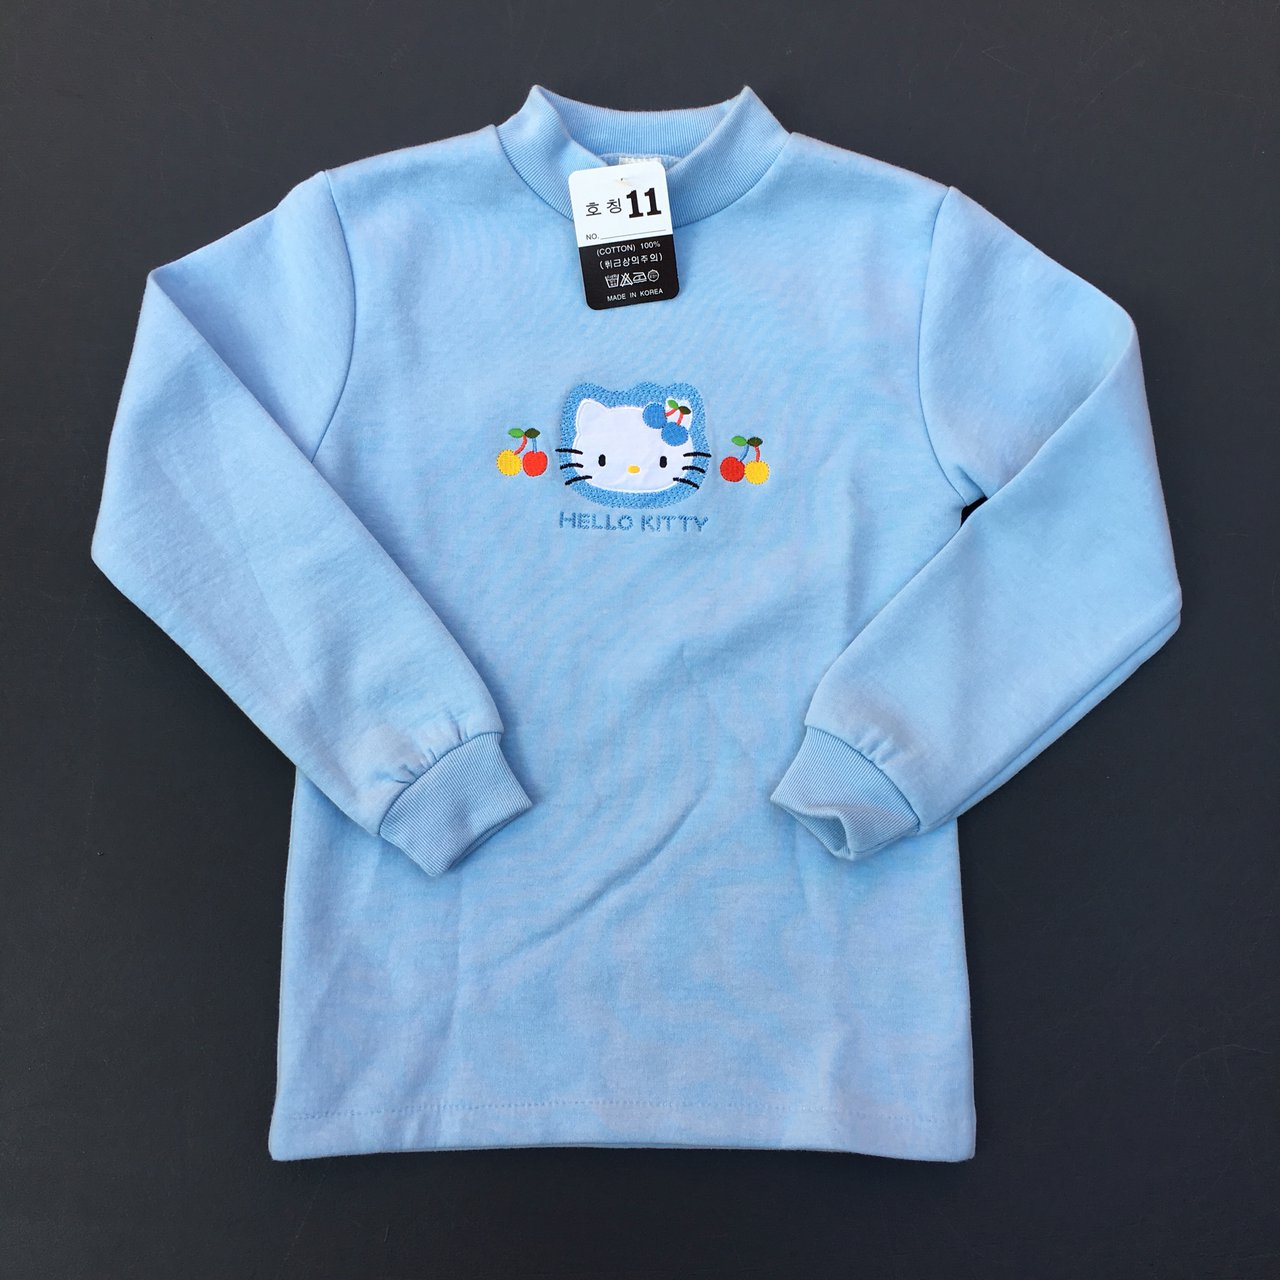 175c6c78a @nightcourt. last year. Richmond, United States. Hello Kitty embroidered  youth pullover.